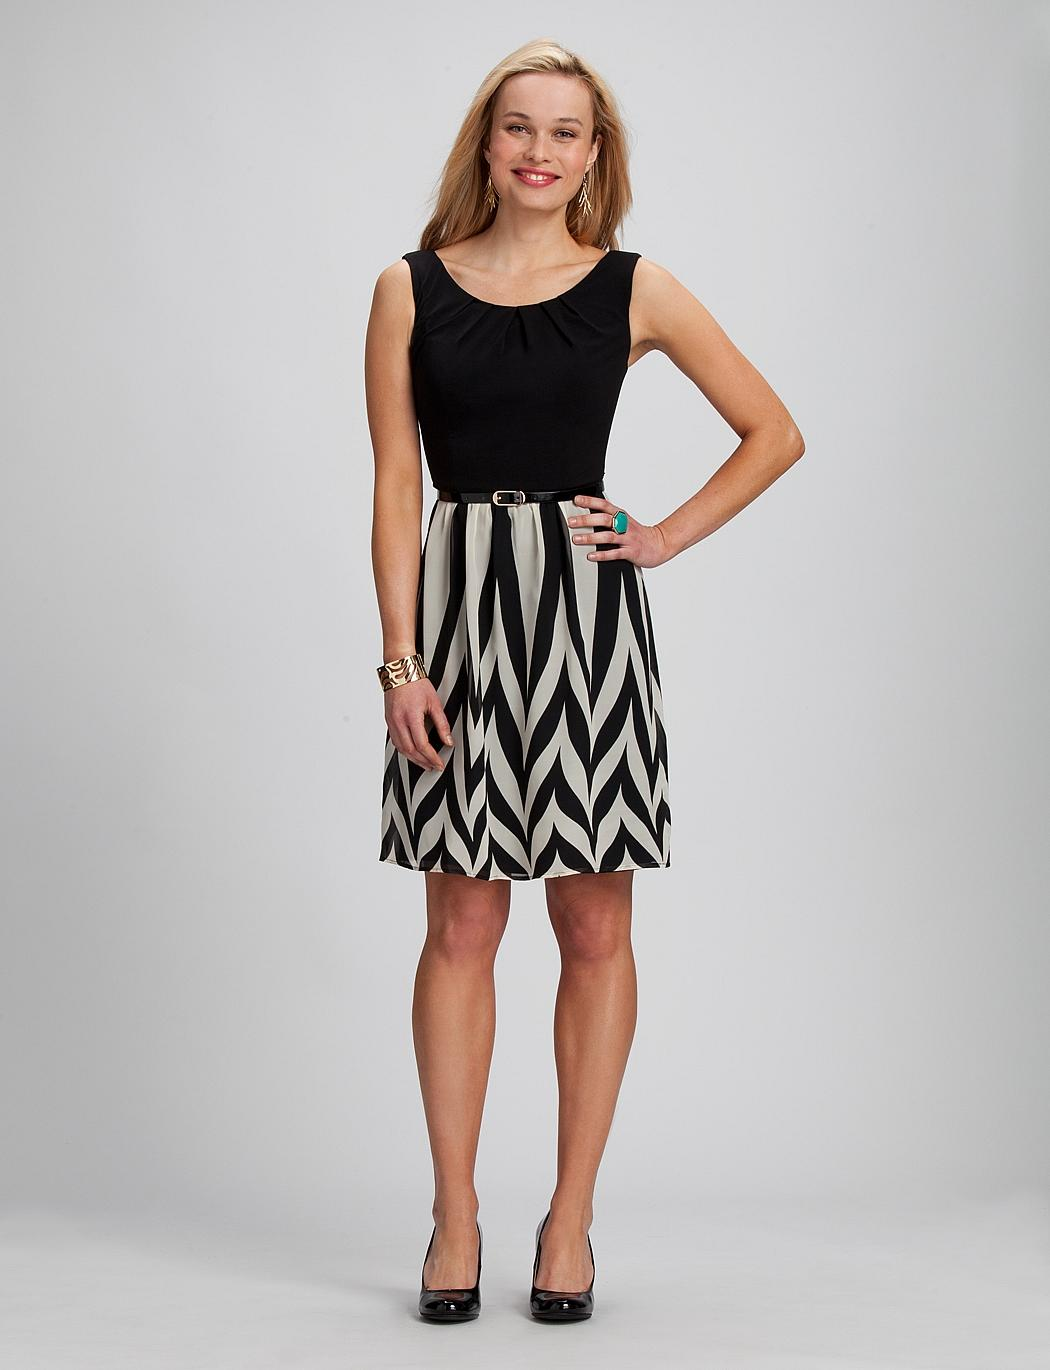 Dress Barn Summer Dresses